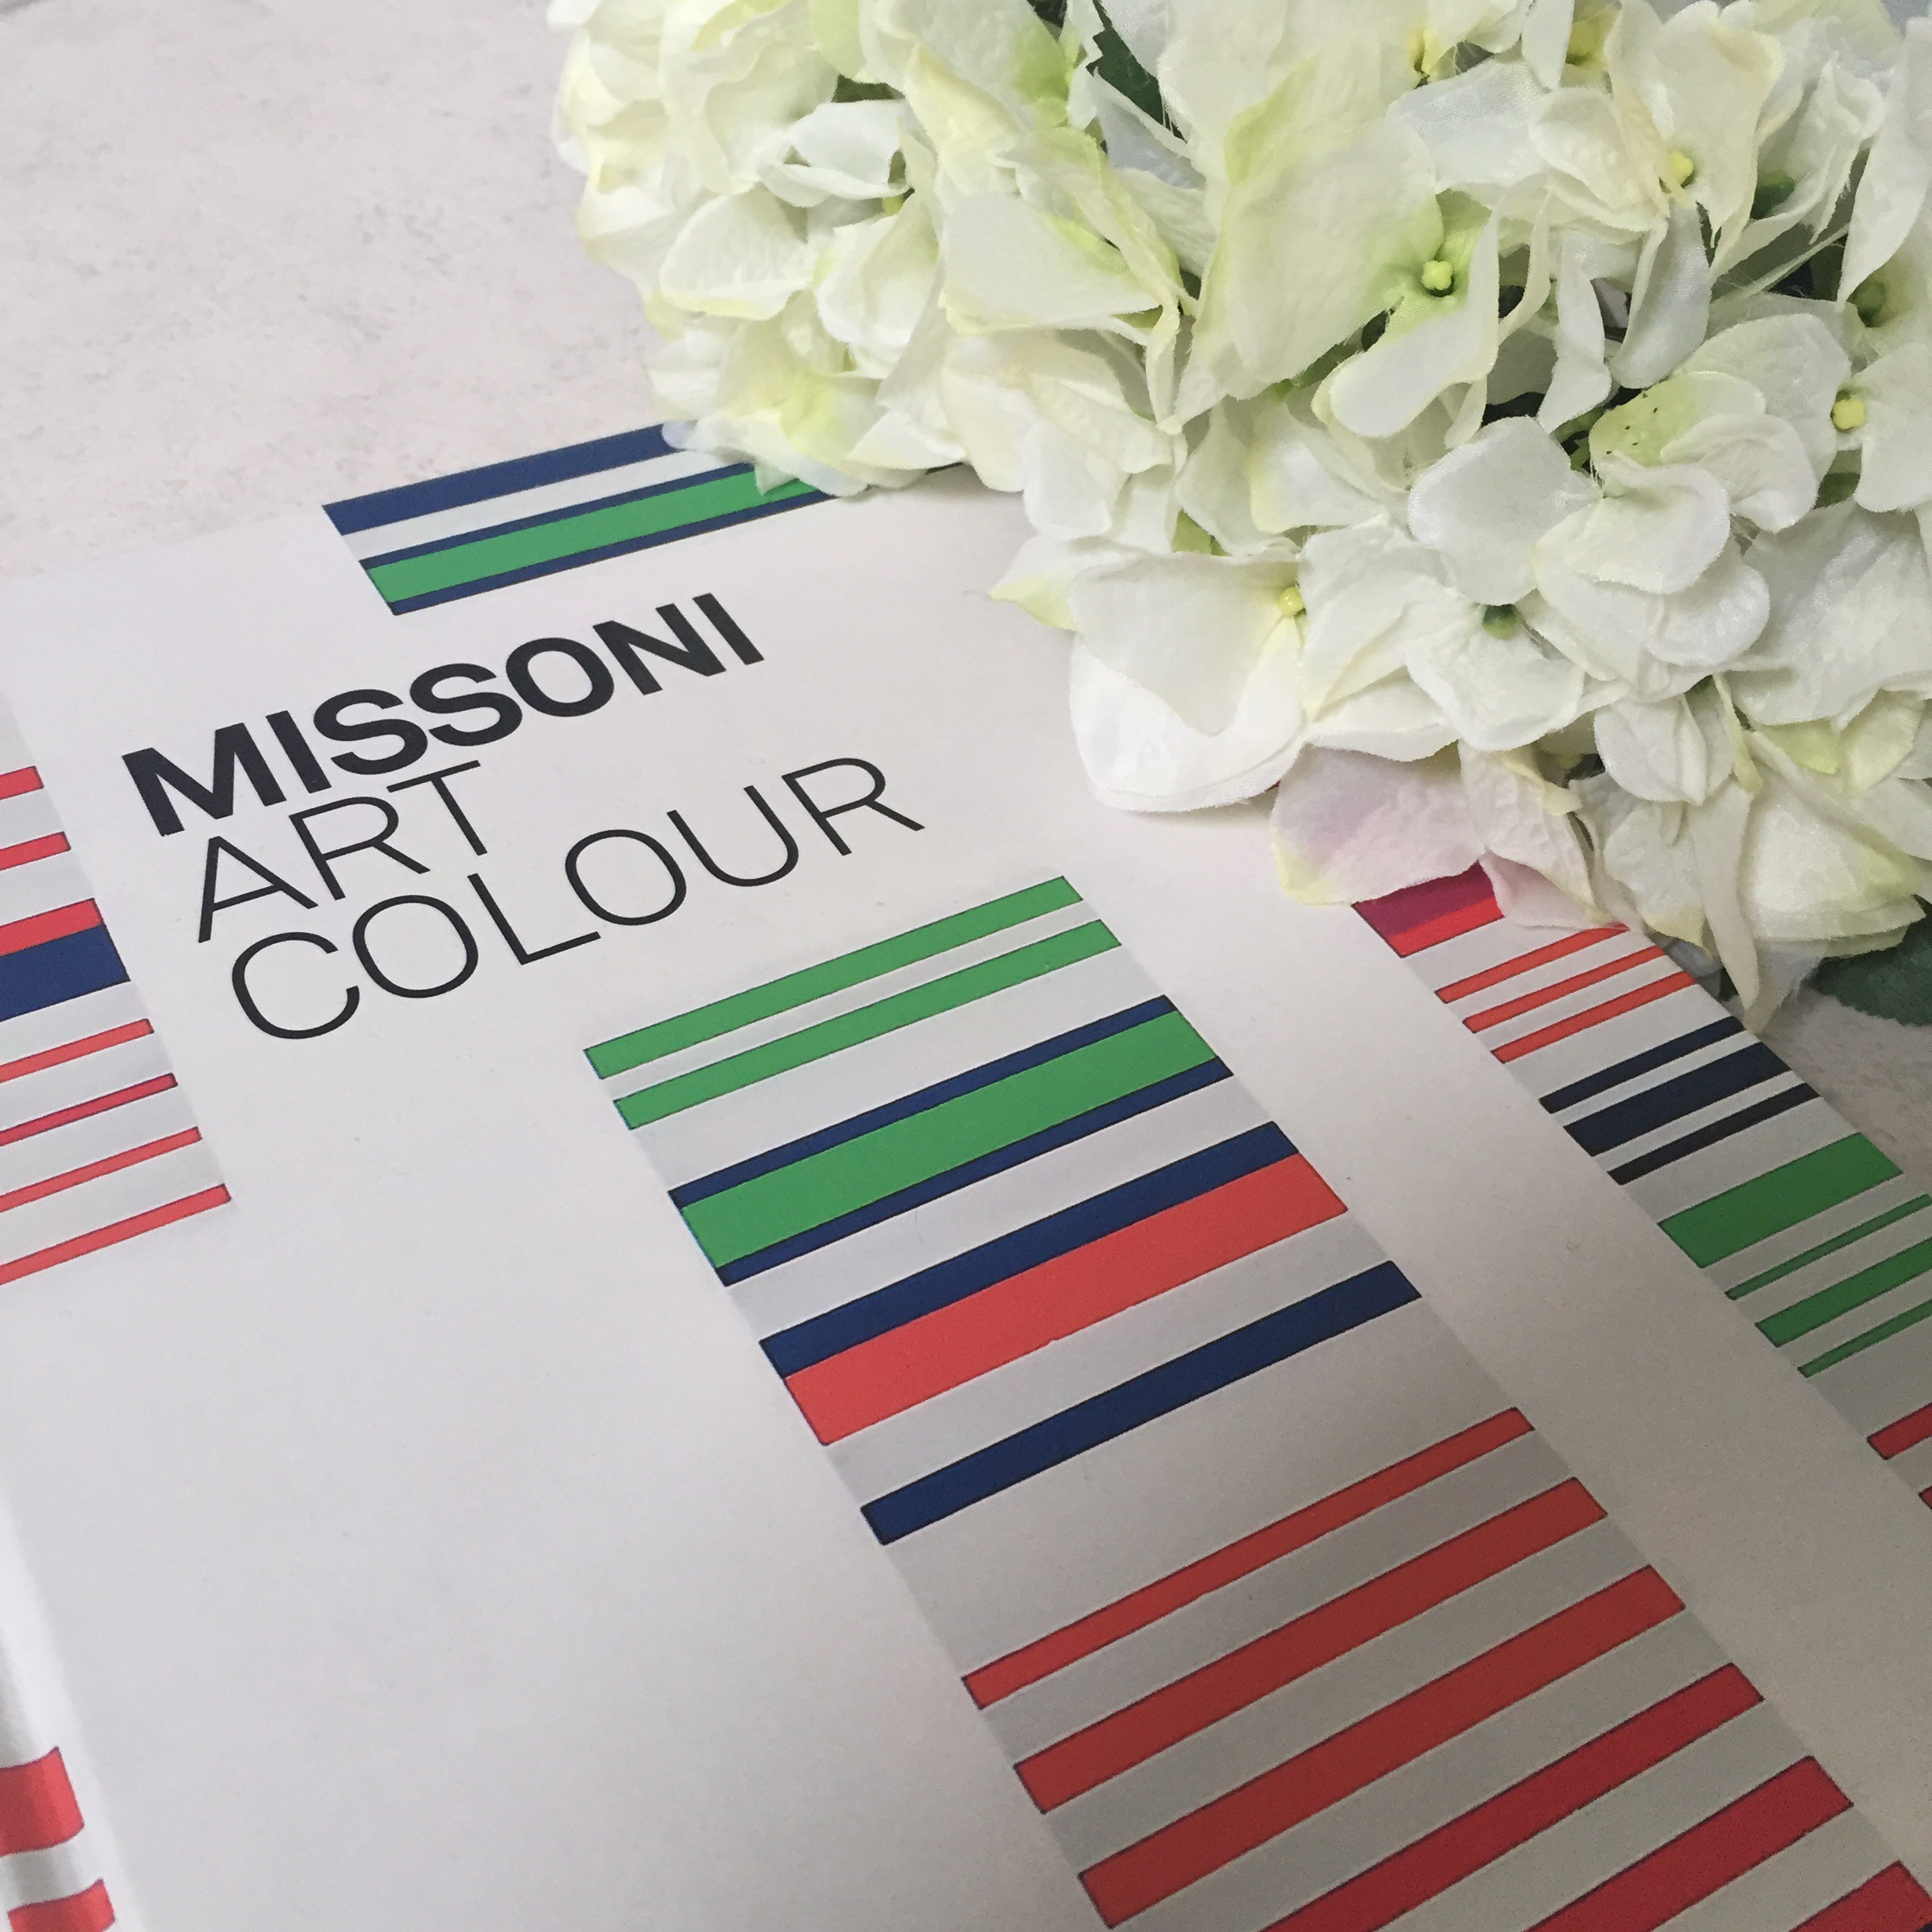 Colour book art - Missoni Art Colour Ended At The Fashion And Textile Museum On September 4 But You Can Certainly Still Snag The Book Ours Was A Gift From Our Lovely Friends